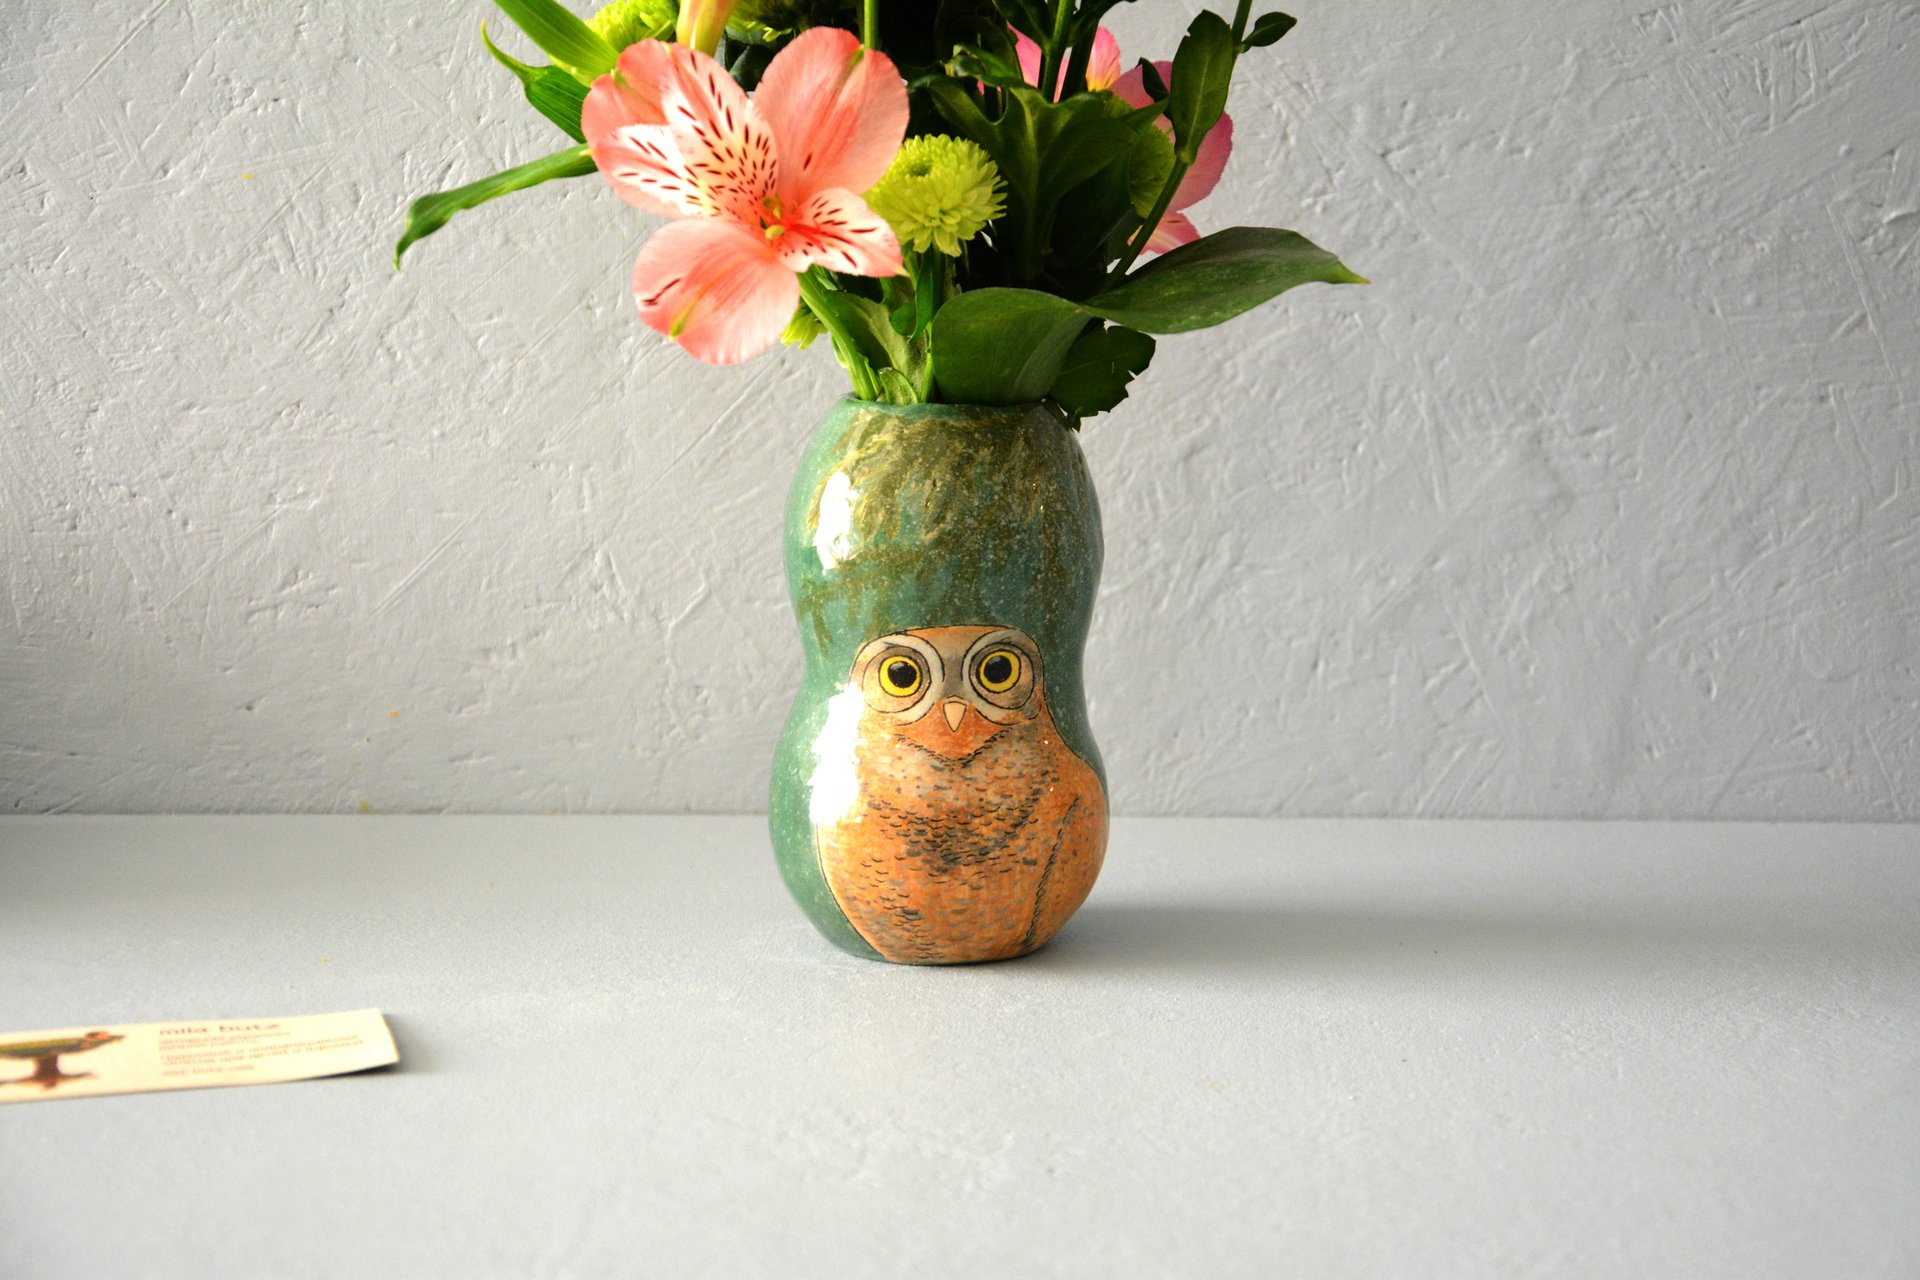 Vase with the image of the Burrowing owl, height - 13 cm, photo 6 of 6. 581.